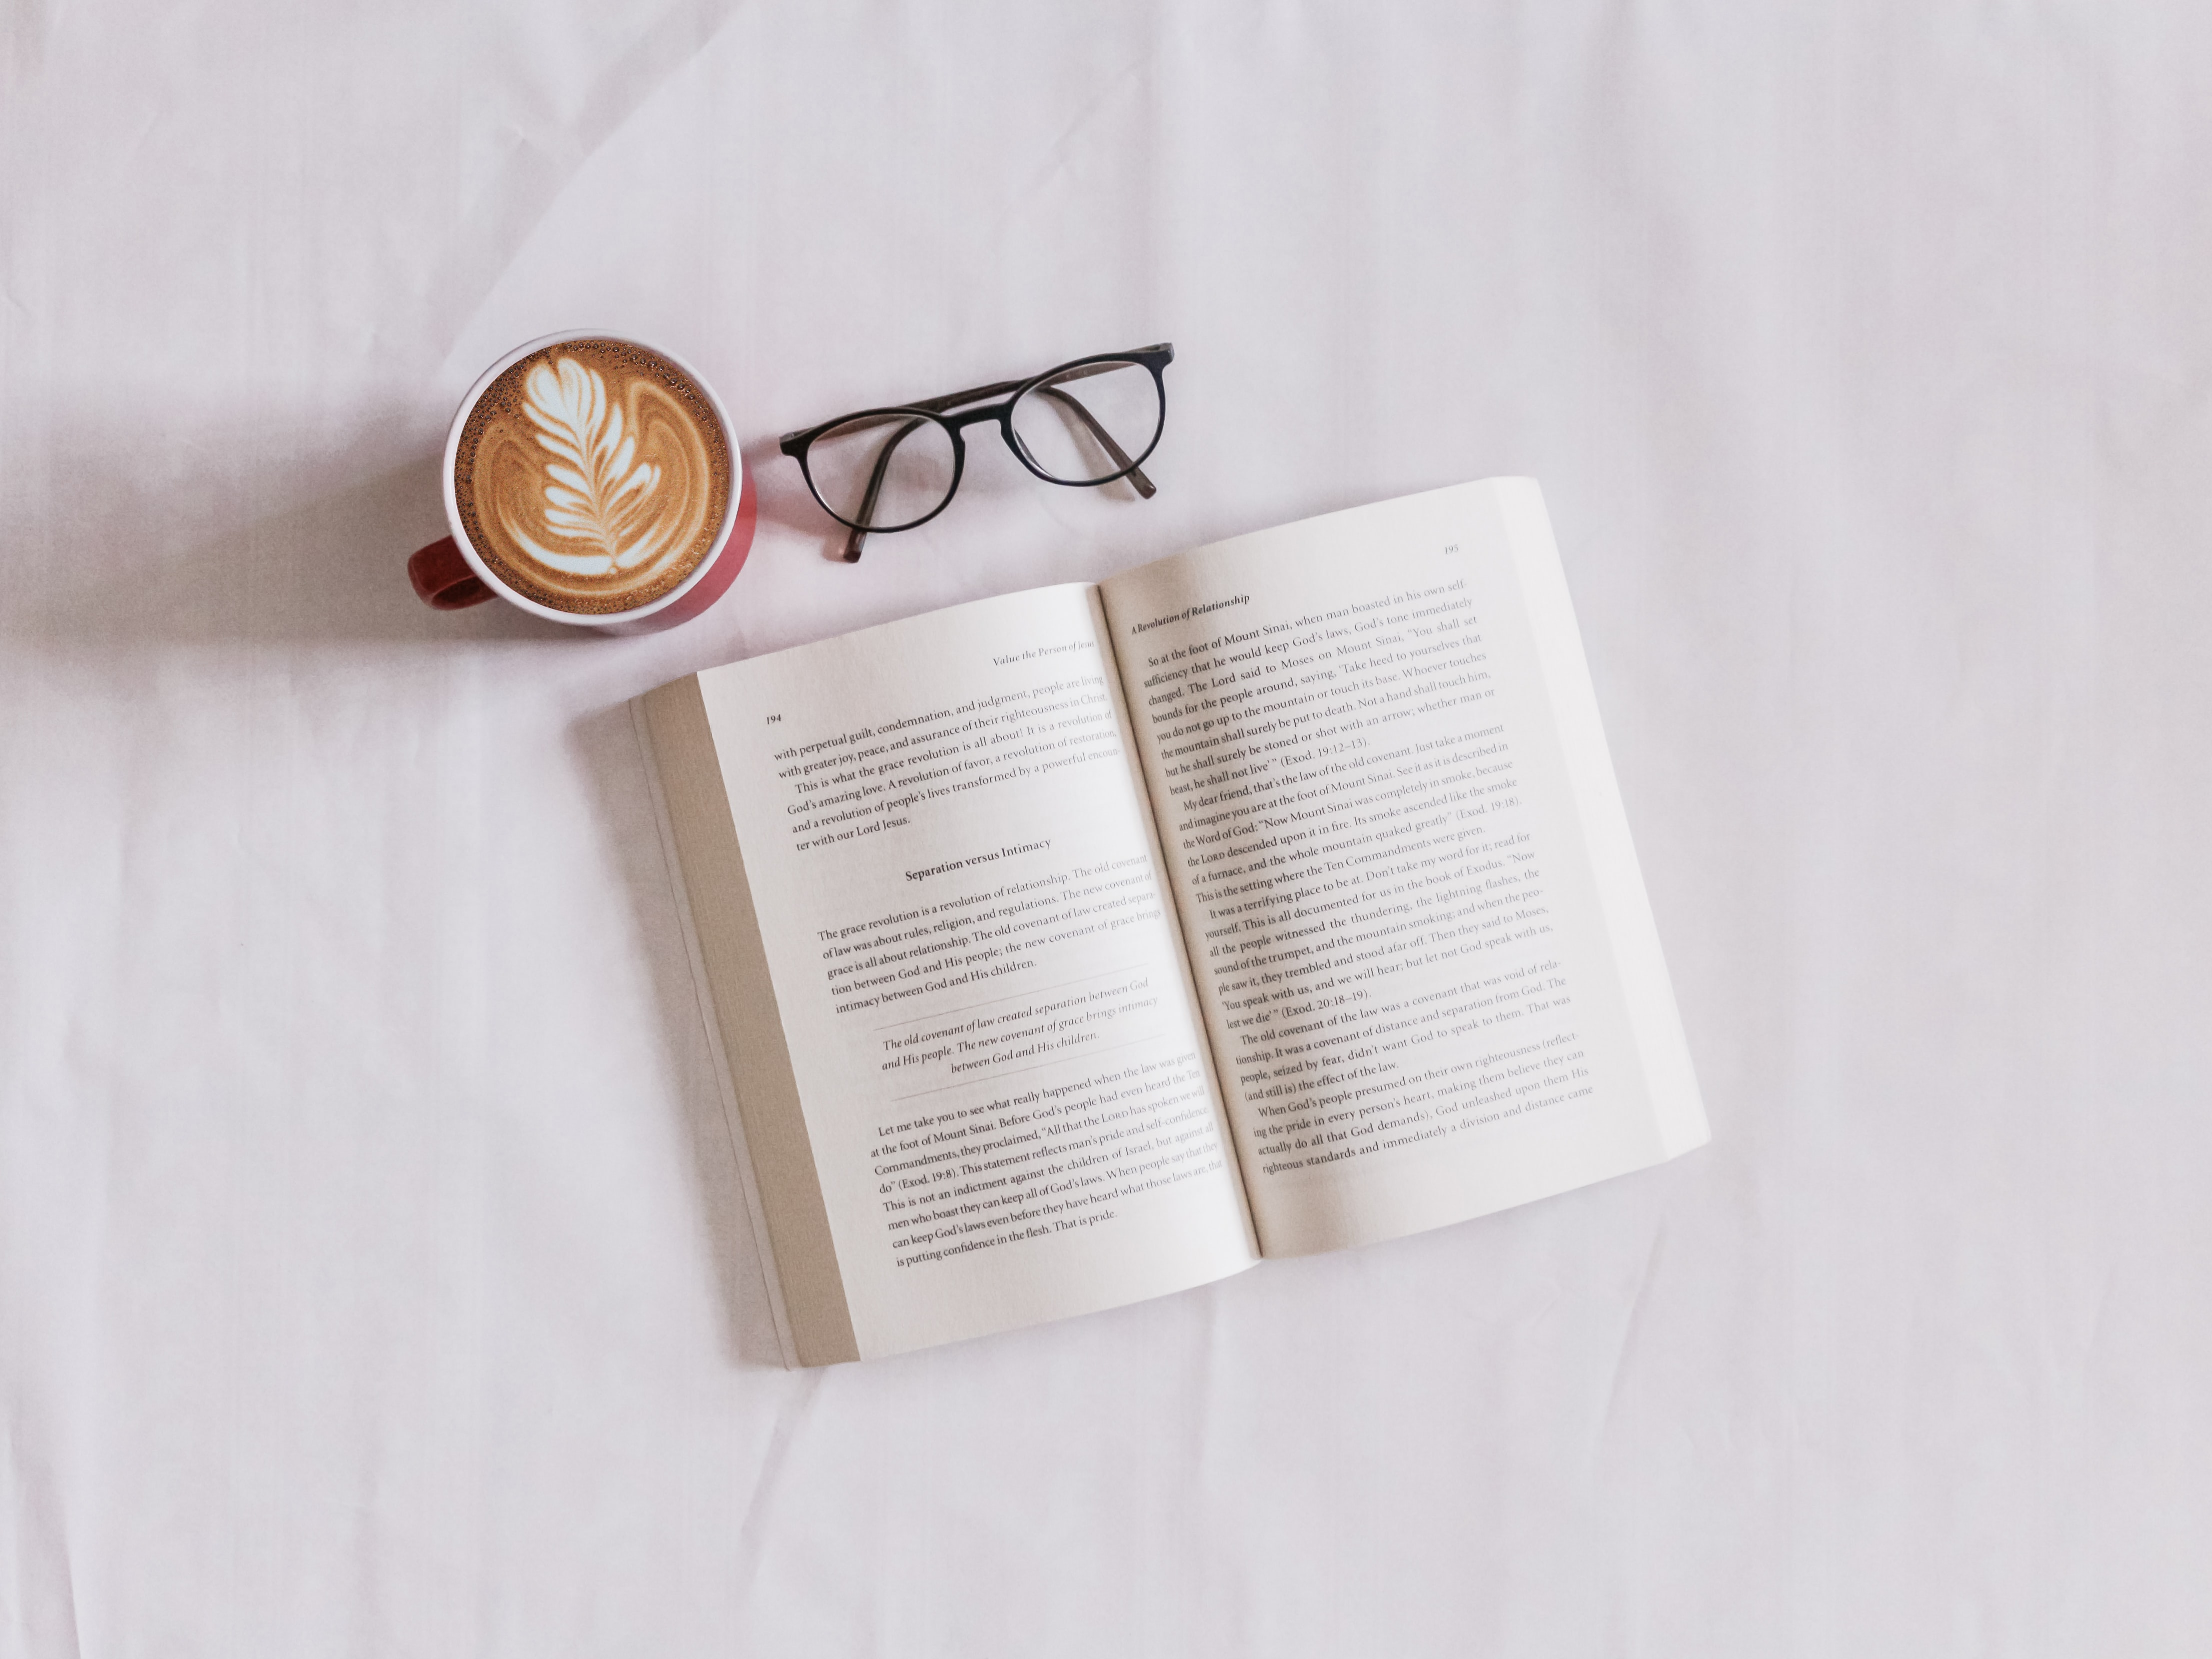 Flat lay photo of a latte with leaf foam art, black eyeglasses, and an open book on a white backgroundsincerely-media-nGrfKmtwv24-unsplash